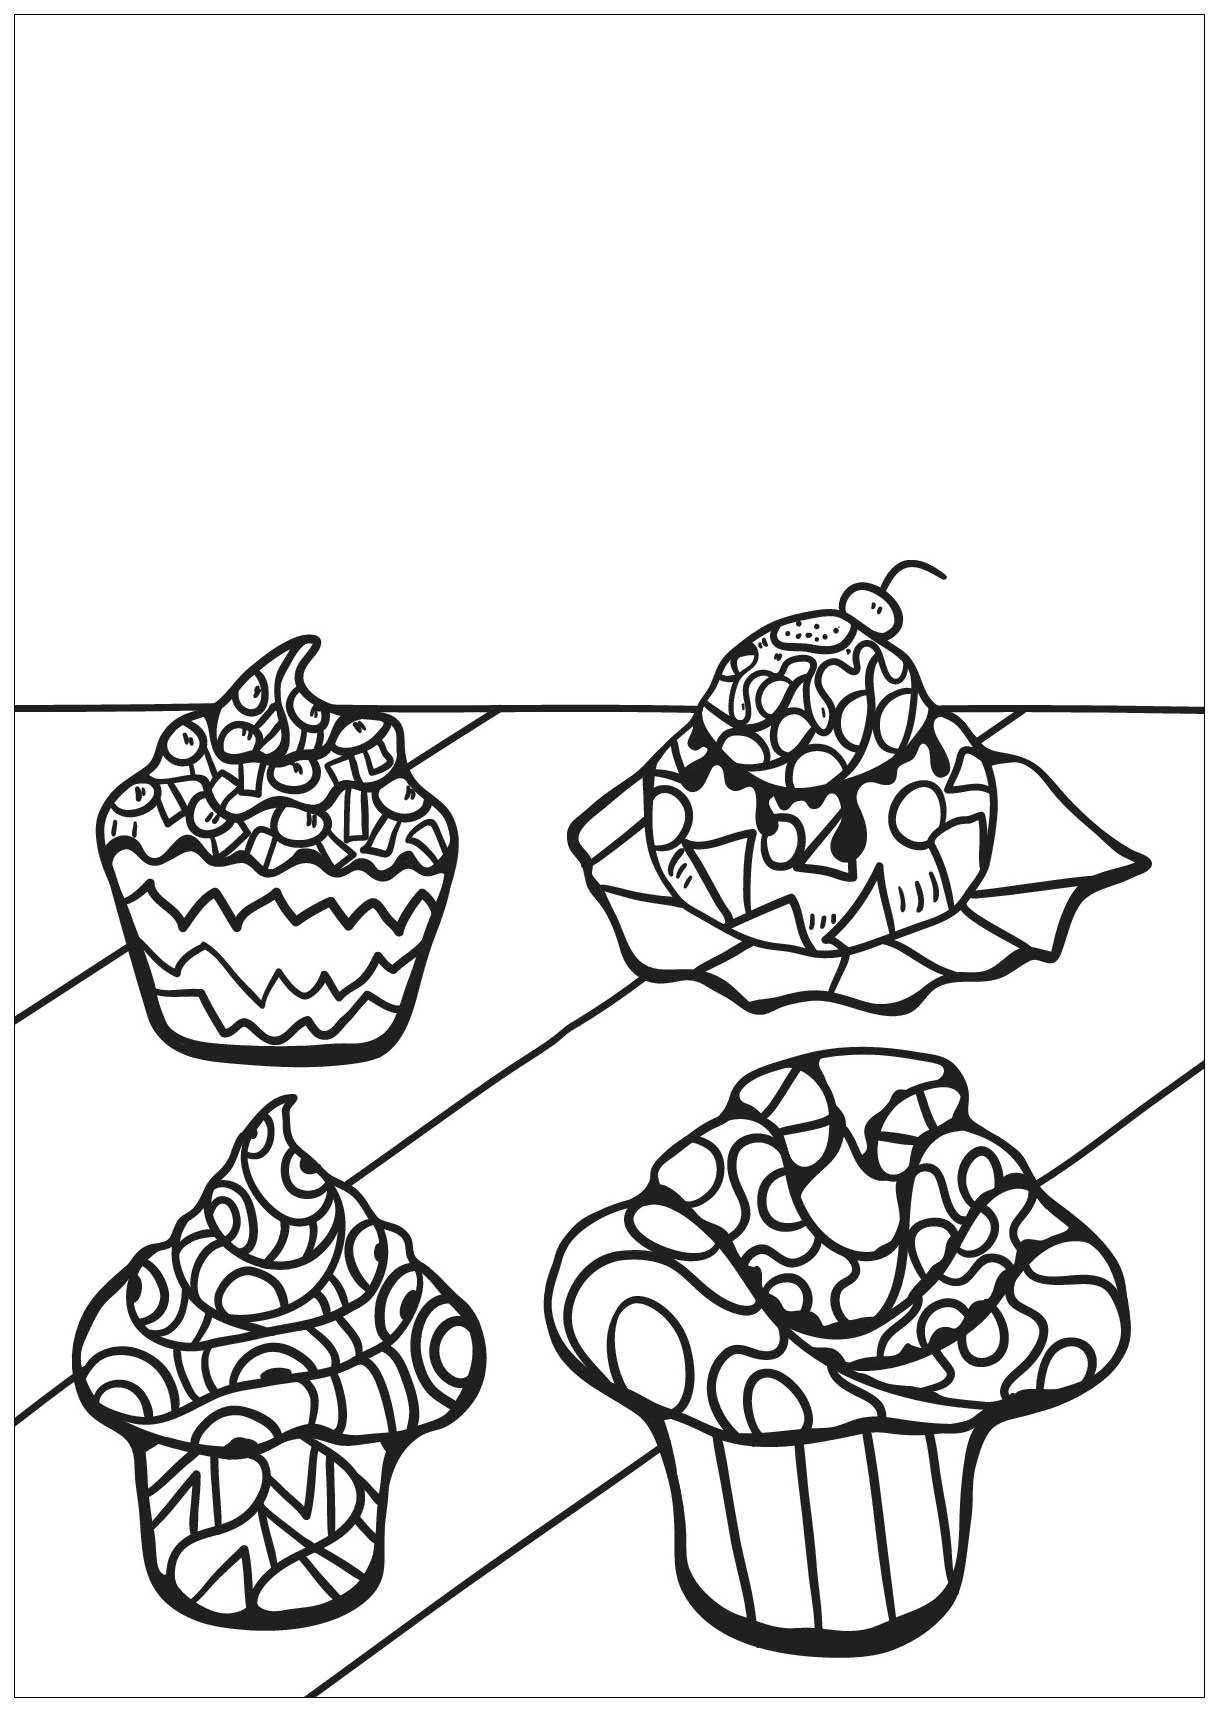 Free Book Cupcake 8 Cupcakes Adult Coloring Pages